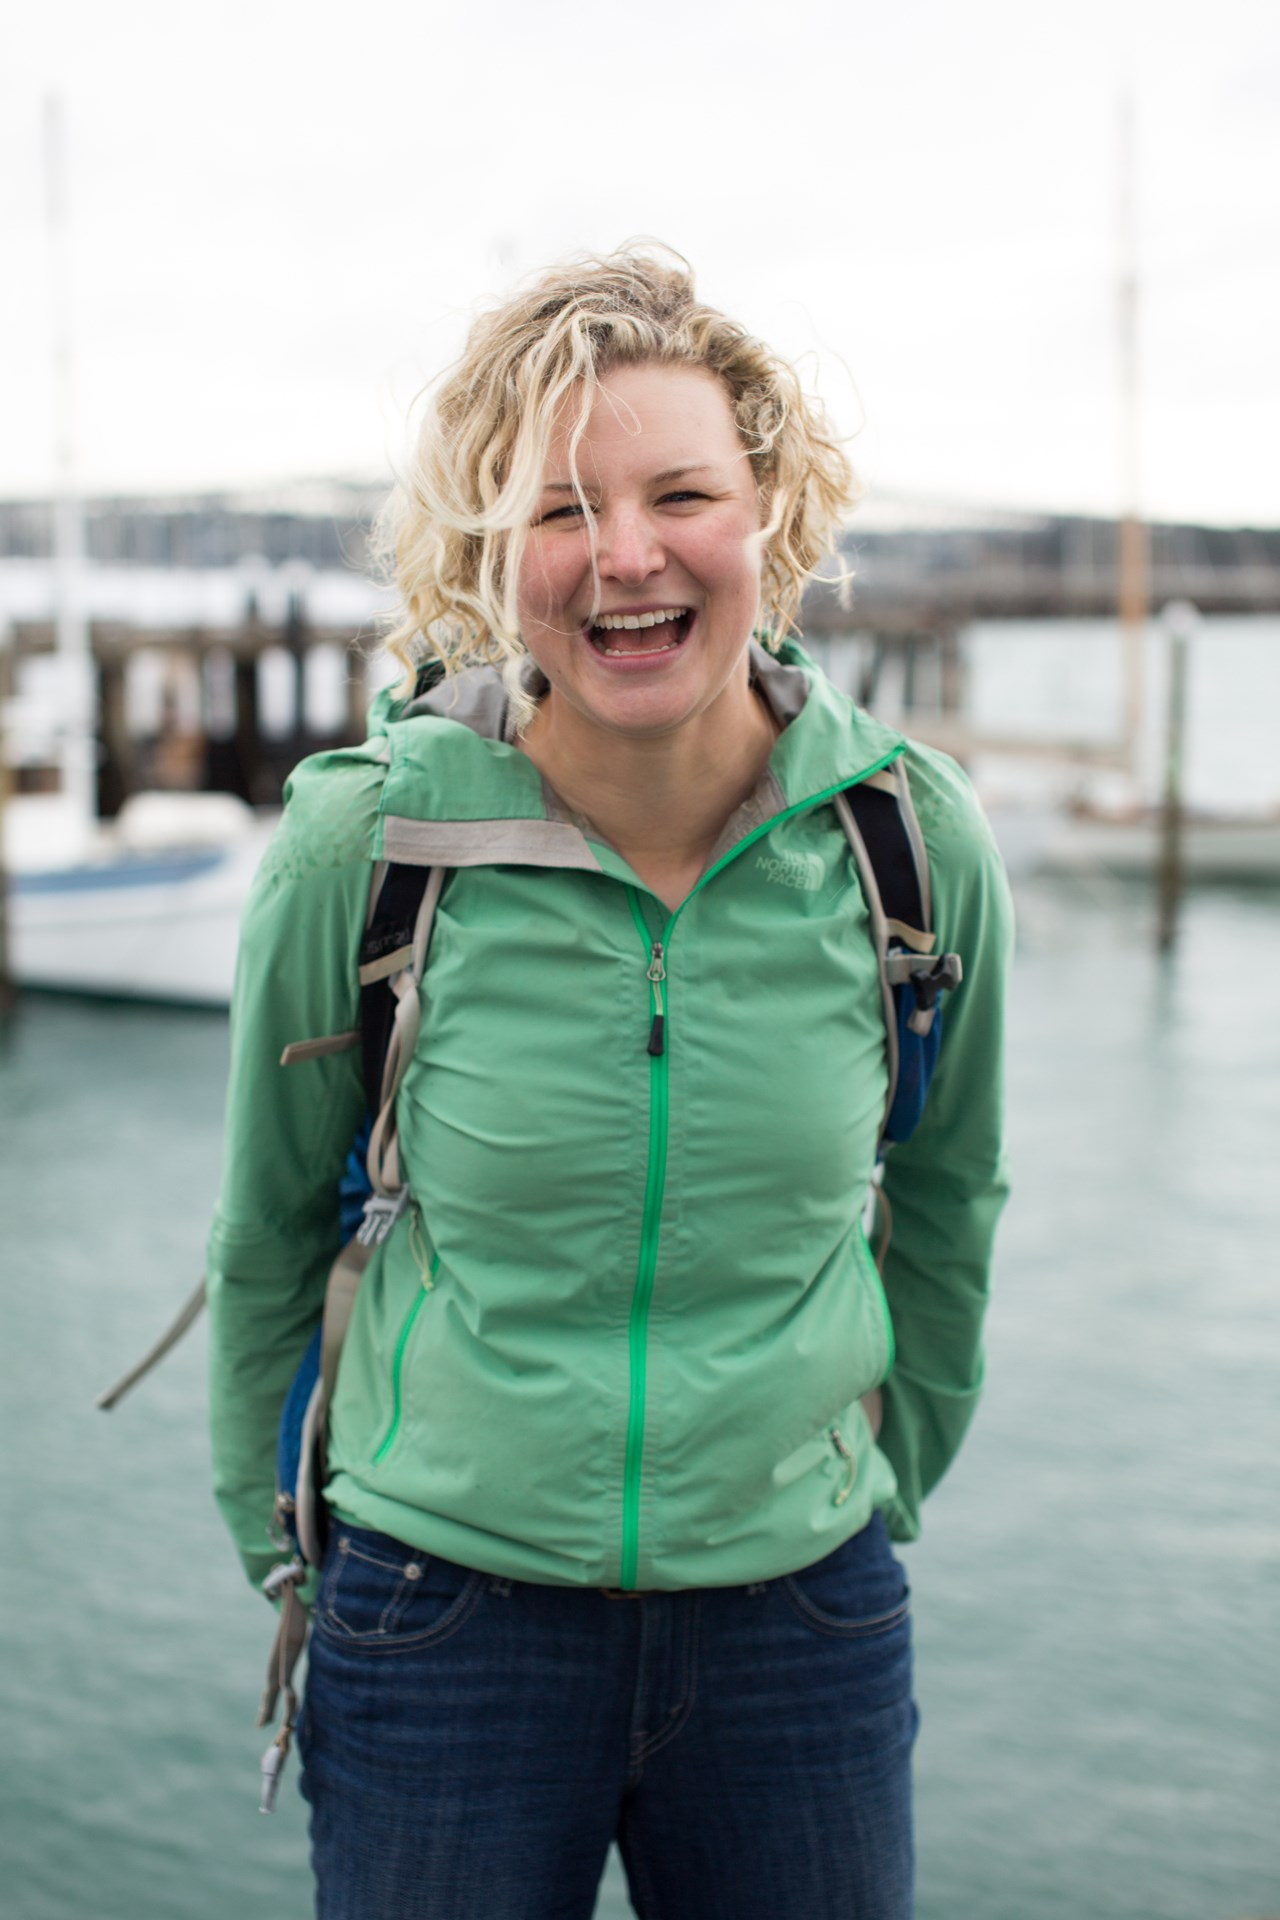 Anna McNuff - Cycled 11,000 miles through every state in the US, ran 1,911 miles along the Te Araroa trail, cycled along the spine of the Andes and ascended over 100,000 metres on a bike